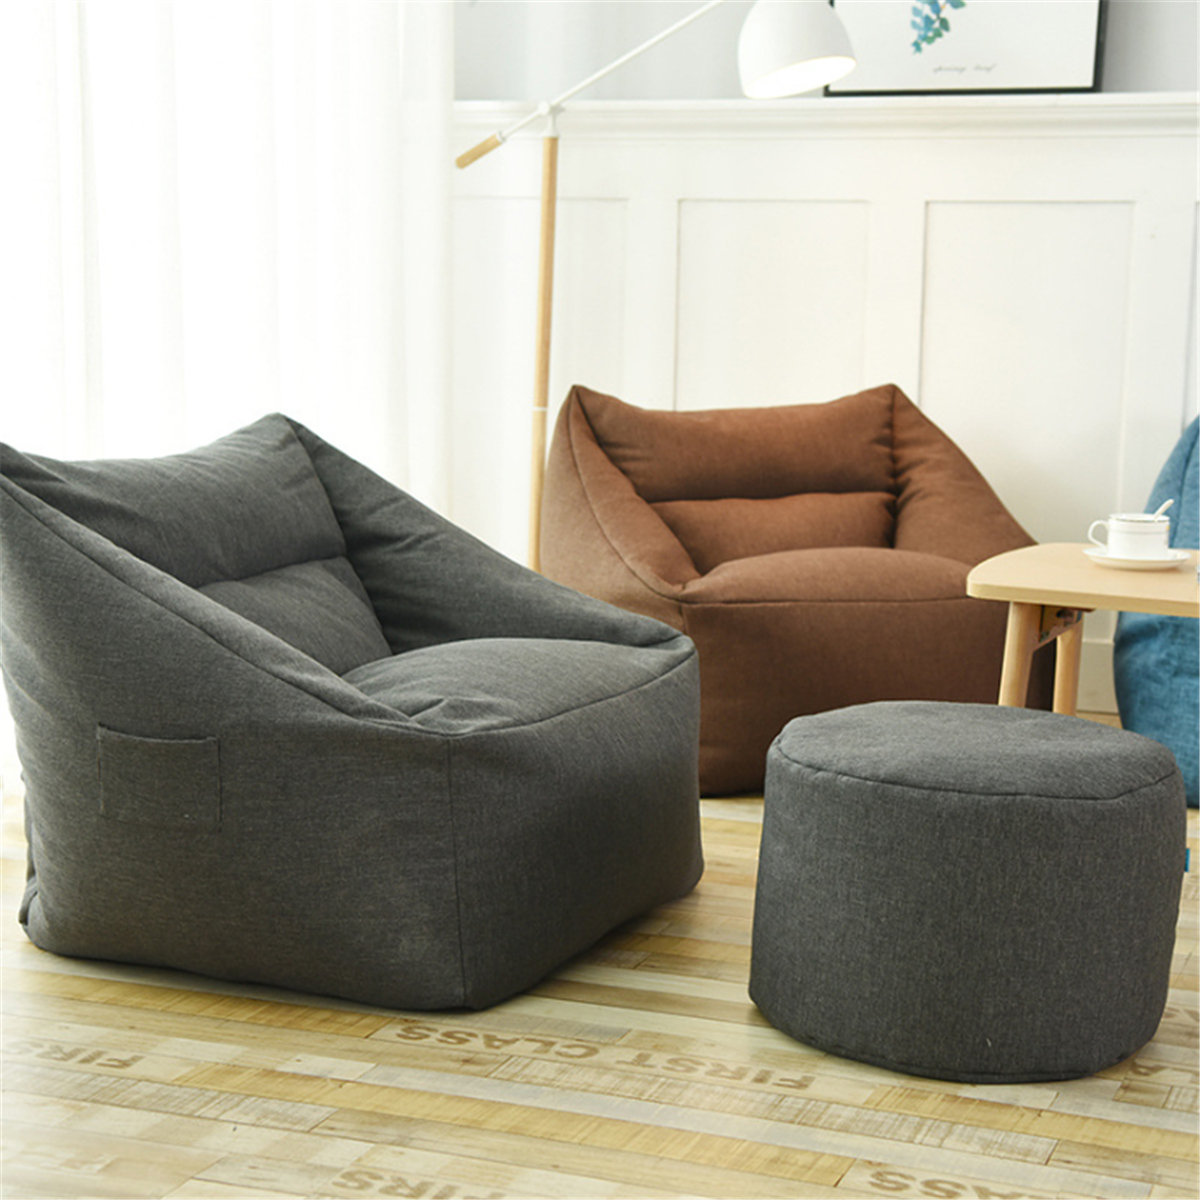 Waterproof Indoor Bean Bag Chair Cover Lazy Sofa Seat Beanbag Sofas Large Game Chair Cover Armchair